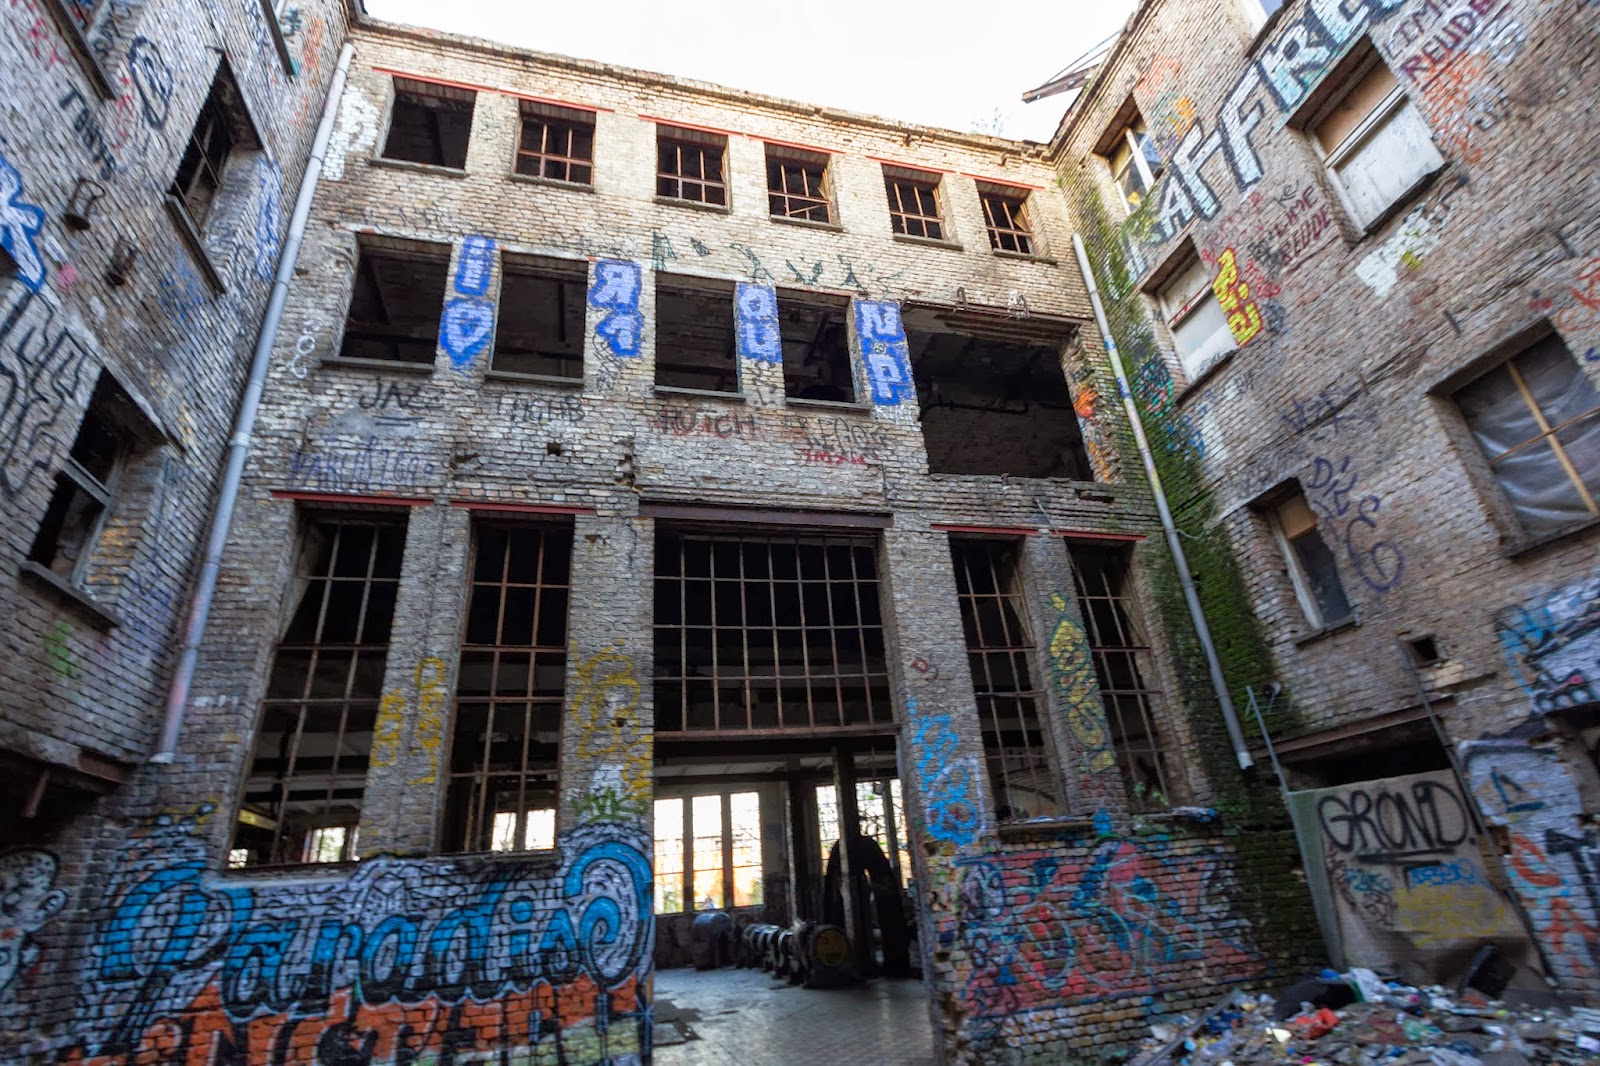 frozen out eisfabrik the abandoned ice factory abandoned berlin. Black Bedroom Furniture Sets. Home Design Ideas